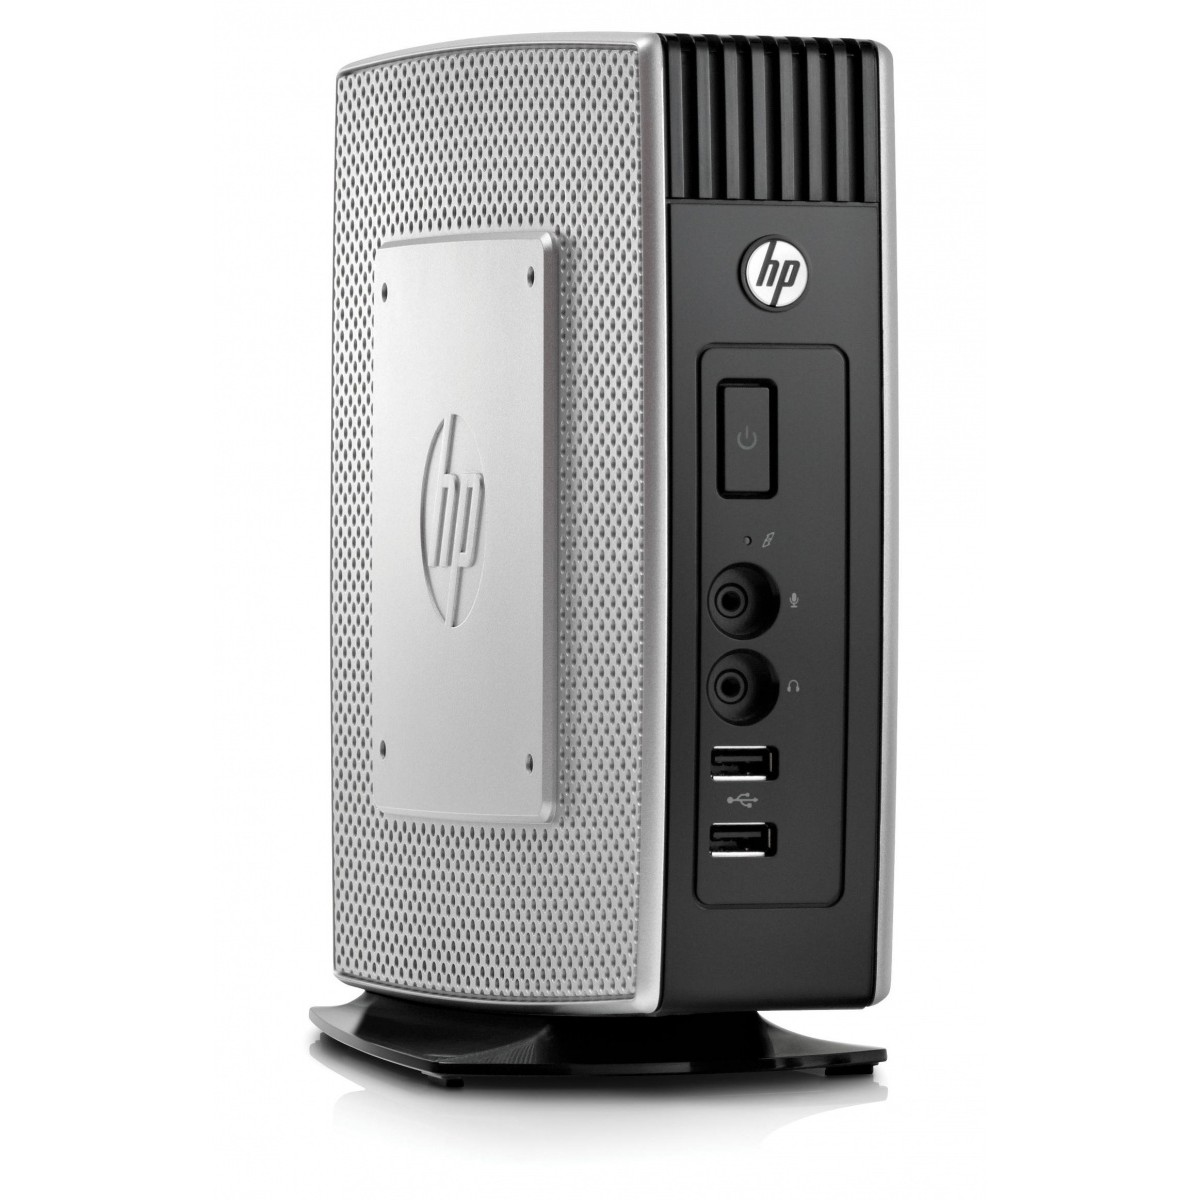 HP t 510 Flexible Thinclient, 1 GB Flash-, keine HDD, 2 GB RAM, Windows CE 6.0 R3 Embeded